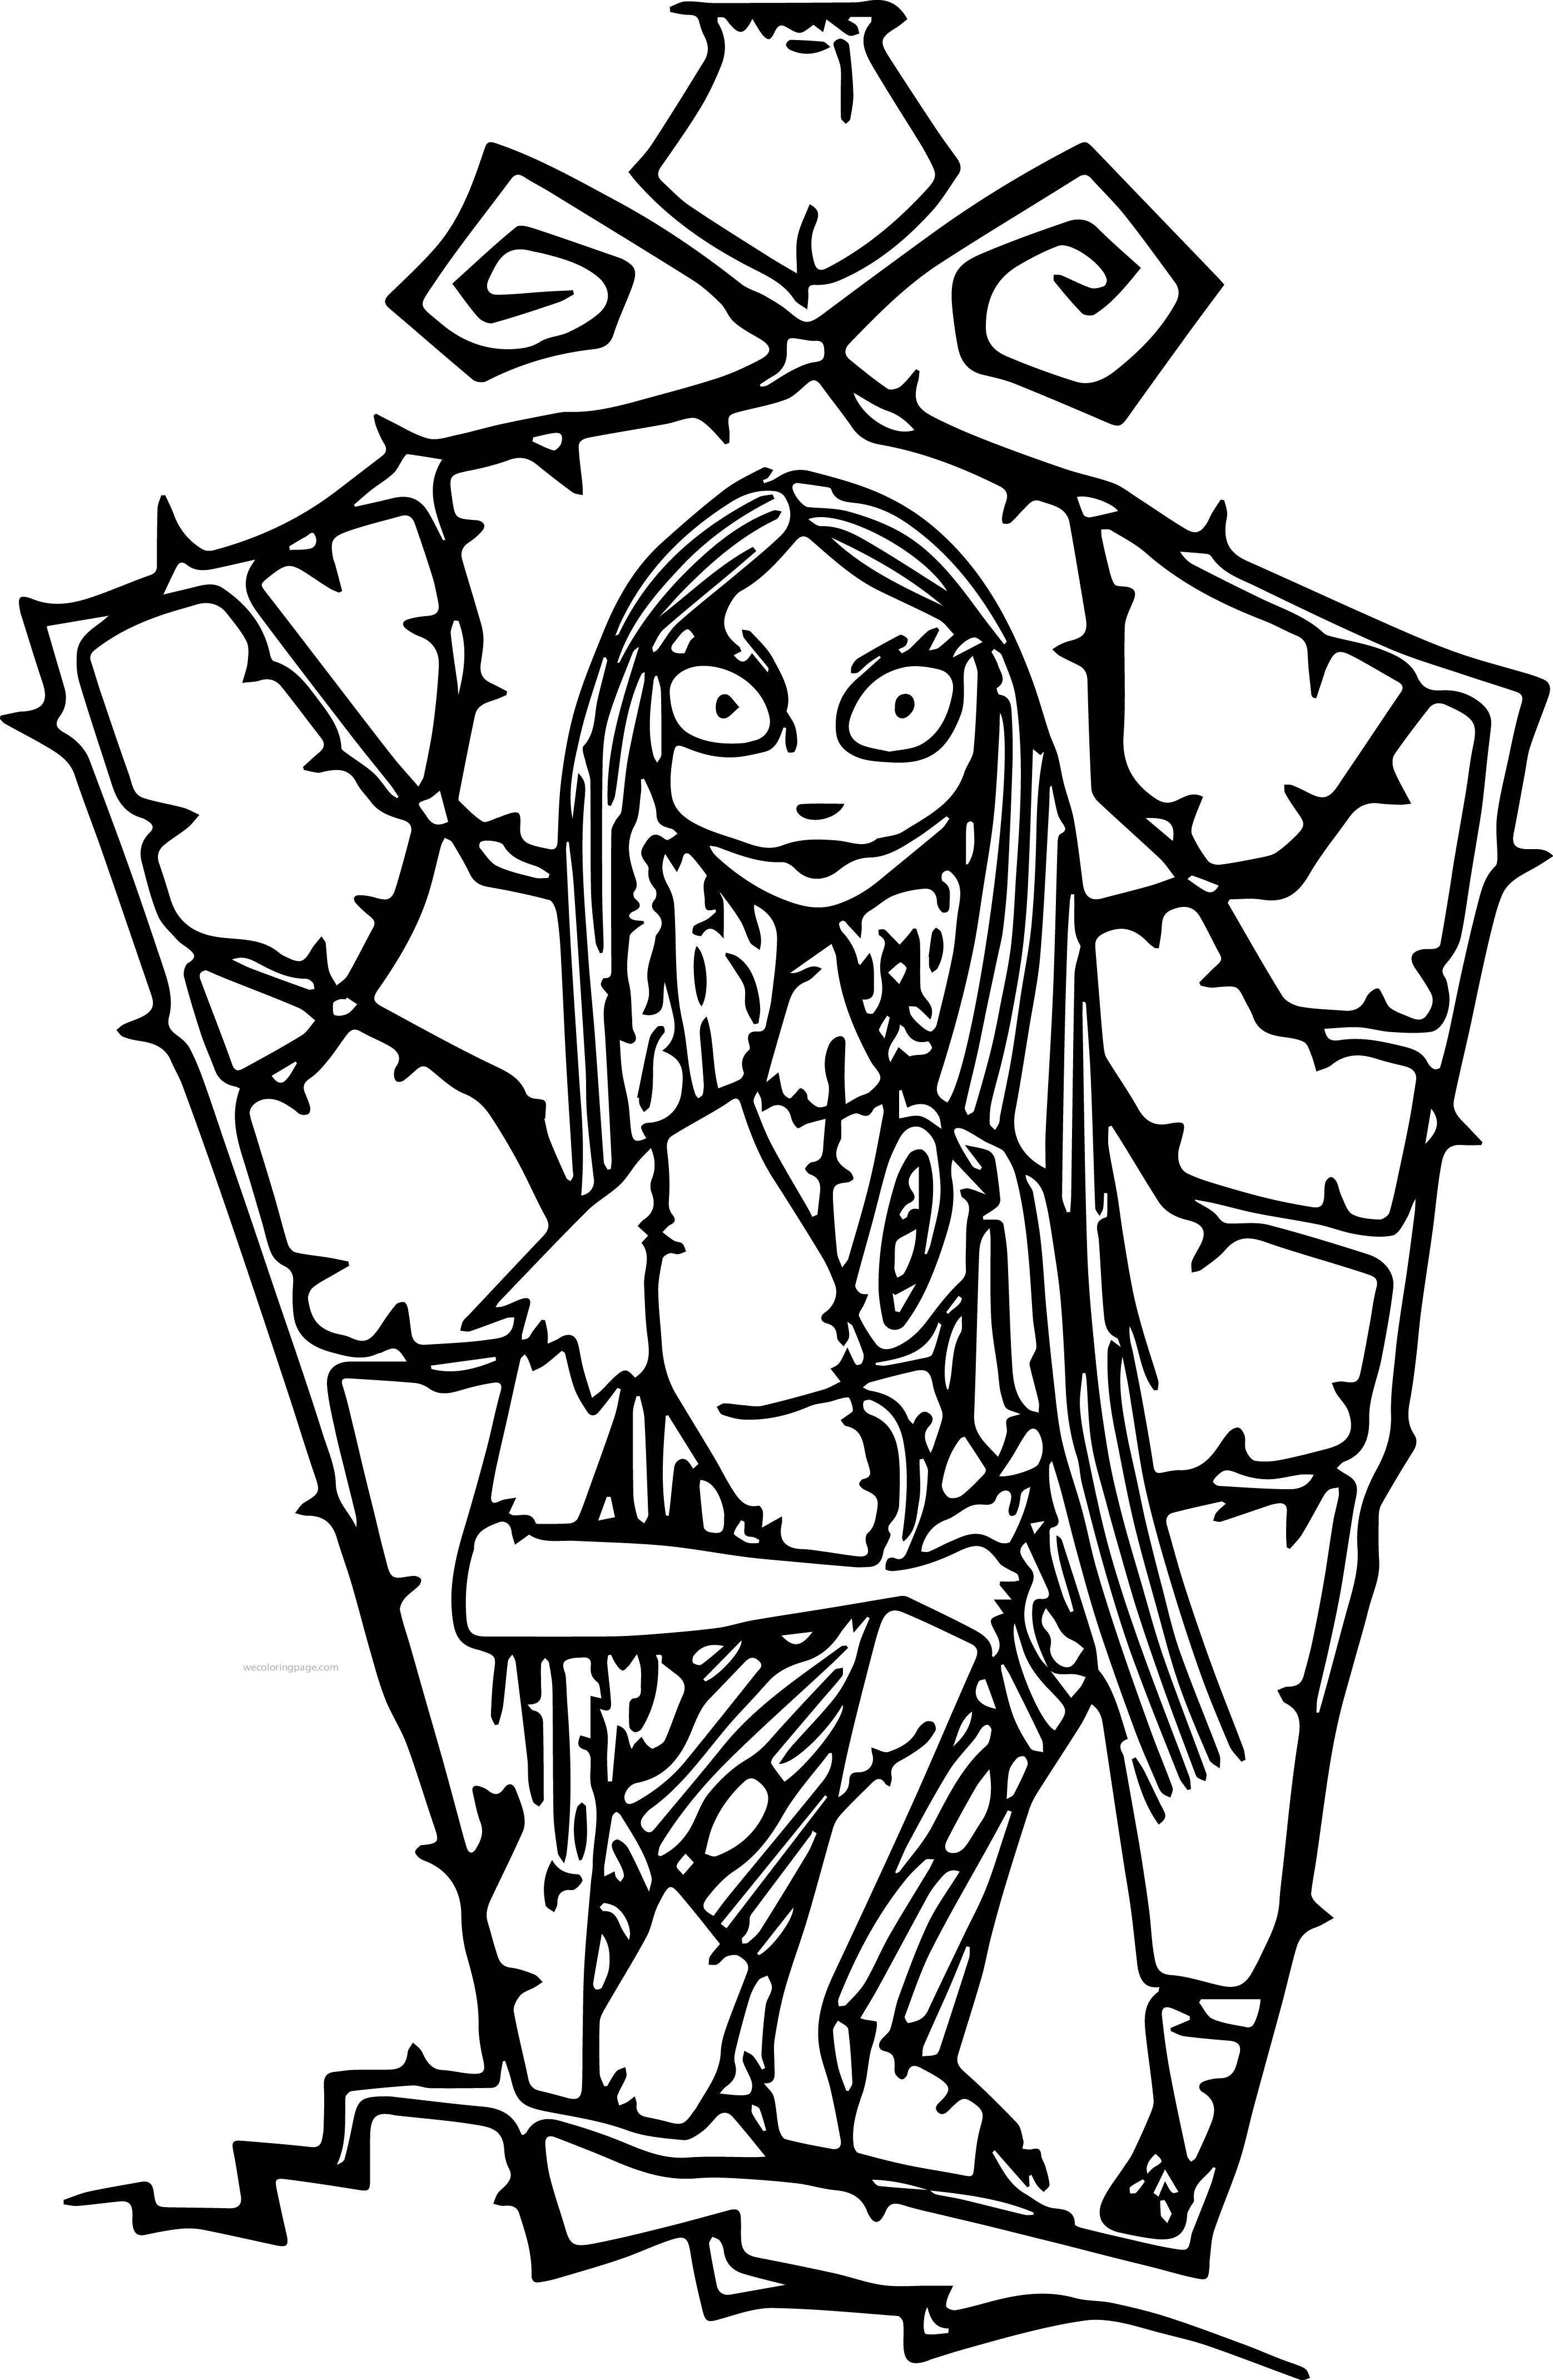 Nightmare before Christmas Coloring Pages  Gallery 20c - To print for your project